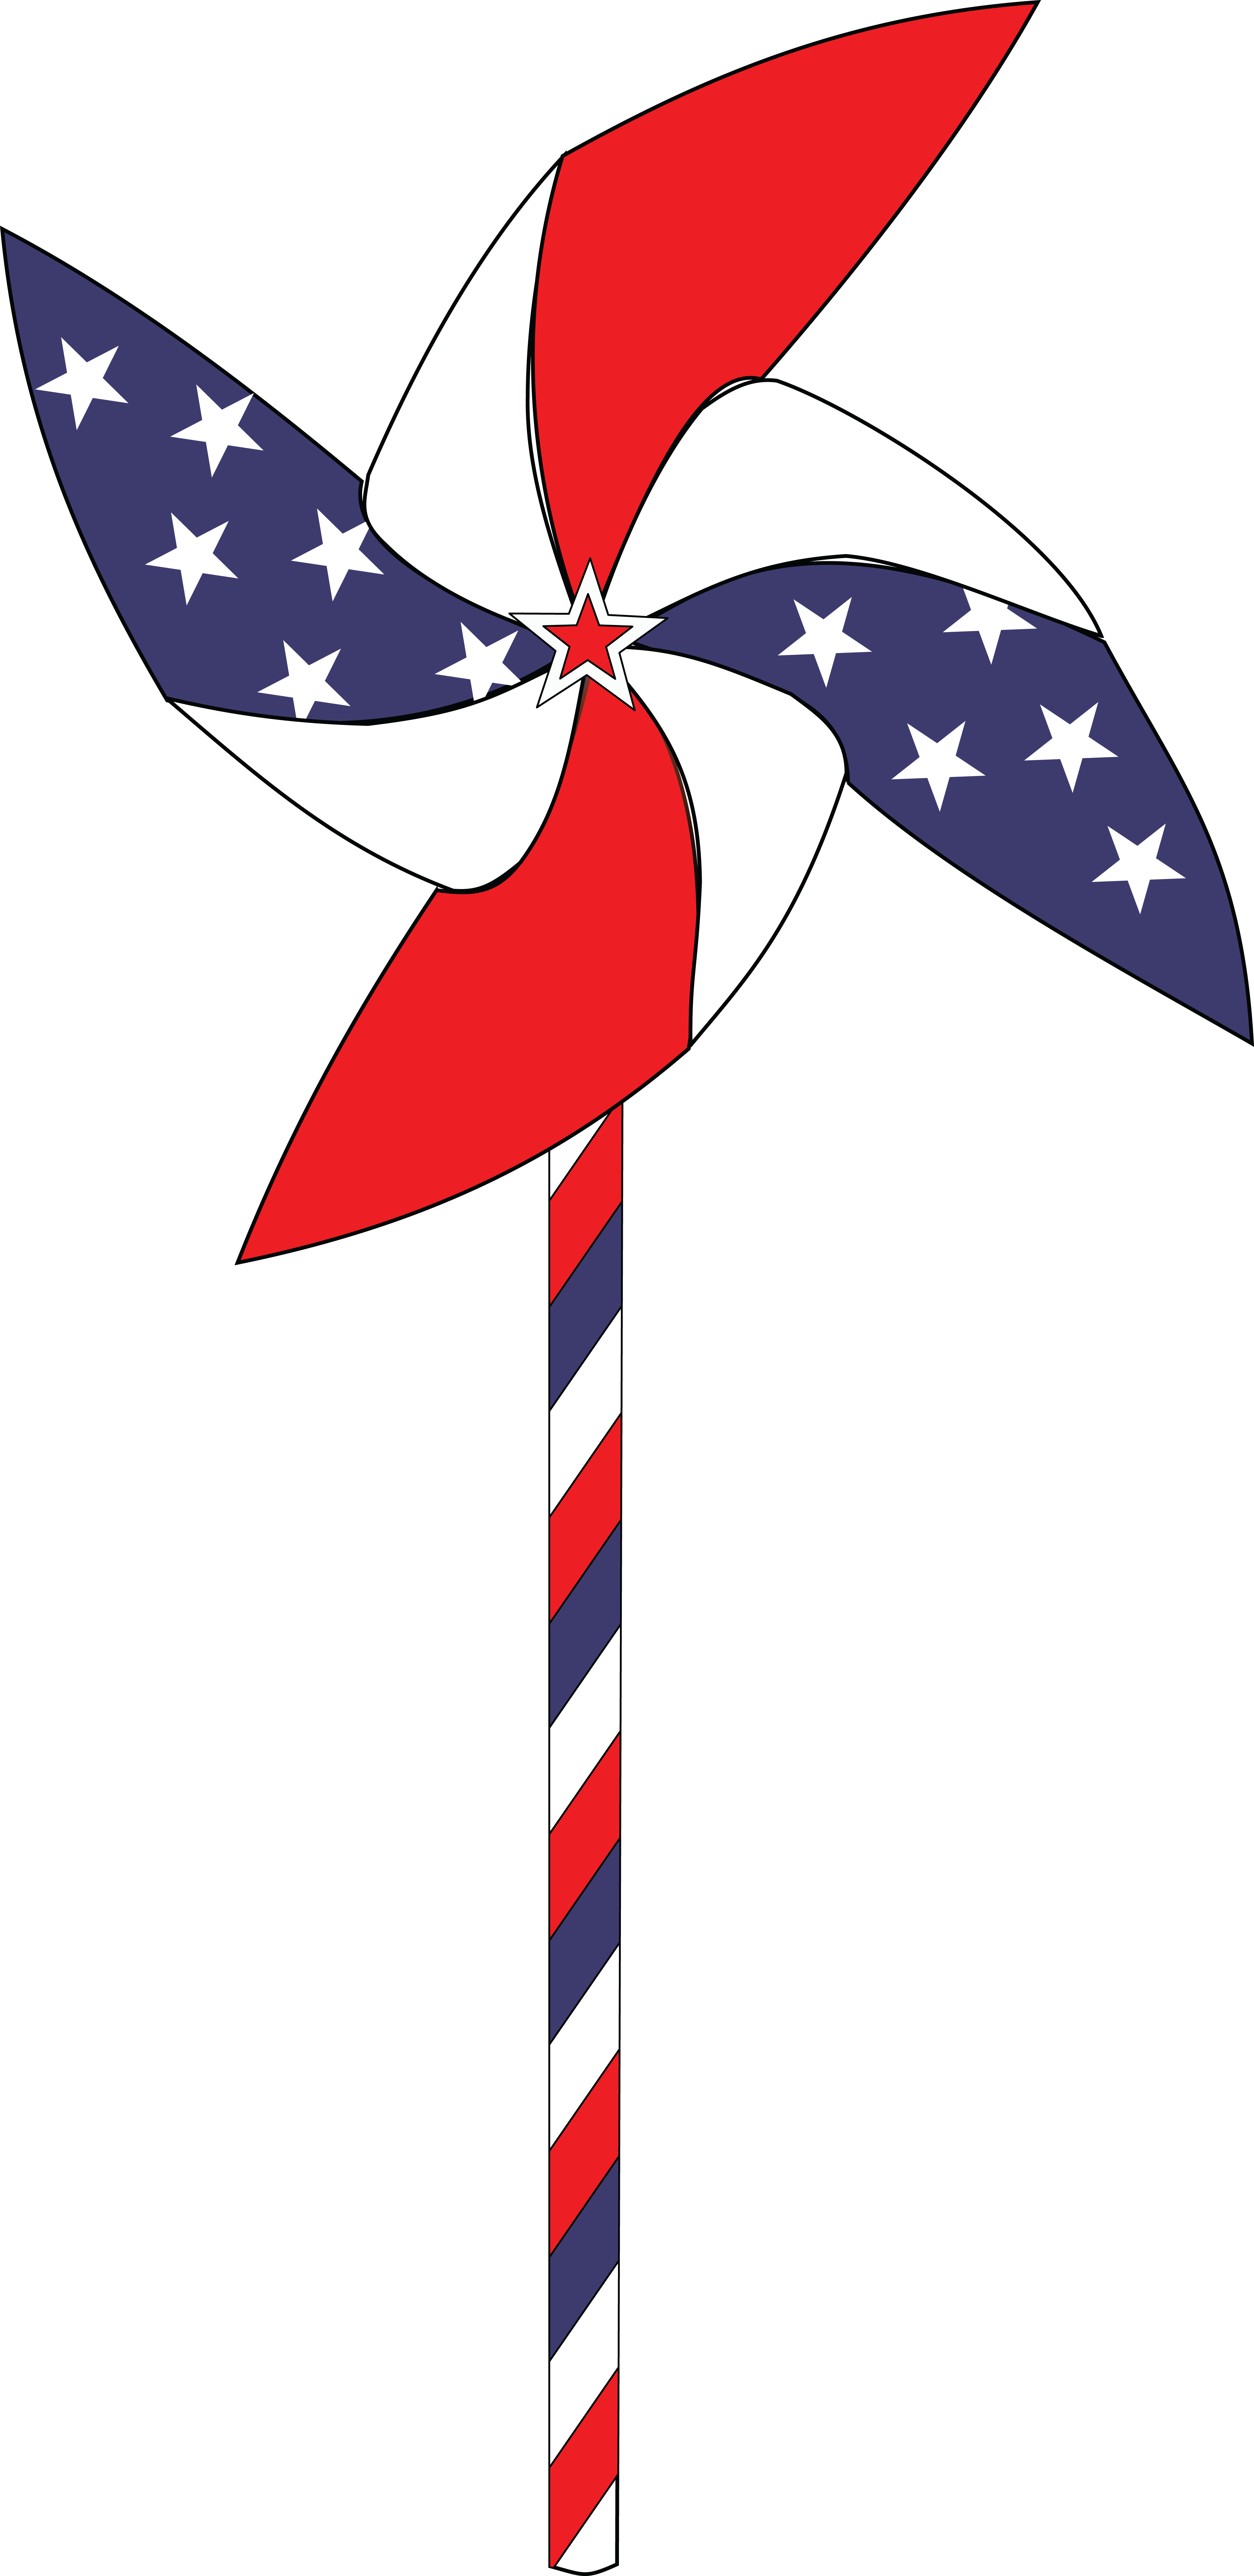 HD This Free Icons Png Design Of July 4th Pinwheel Animation.